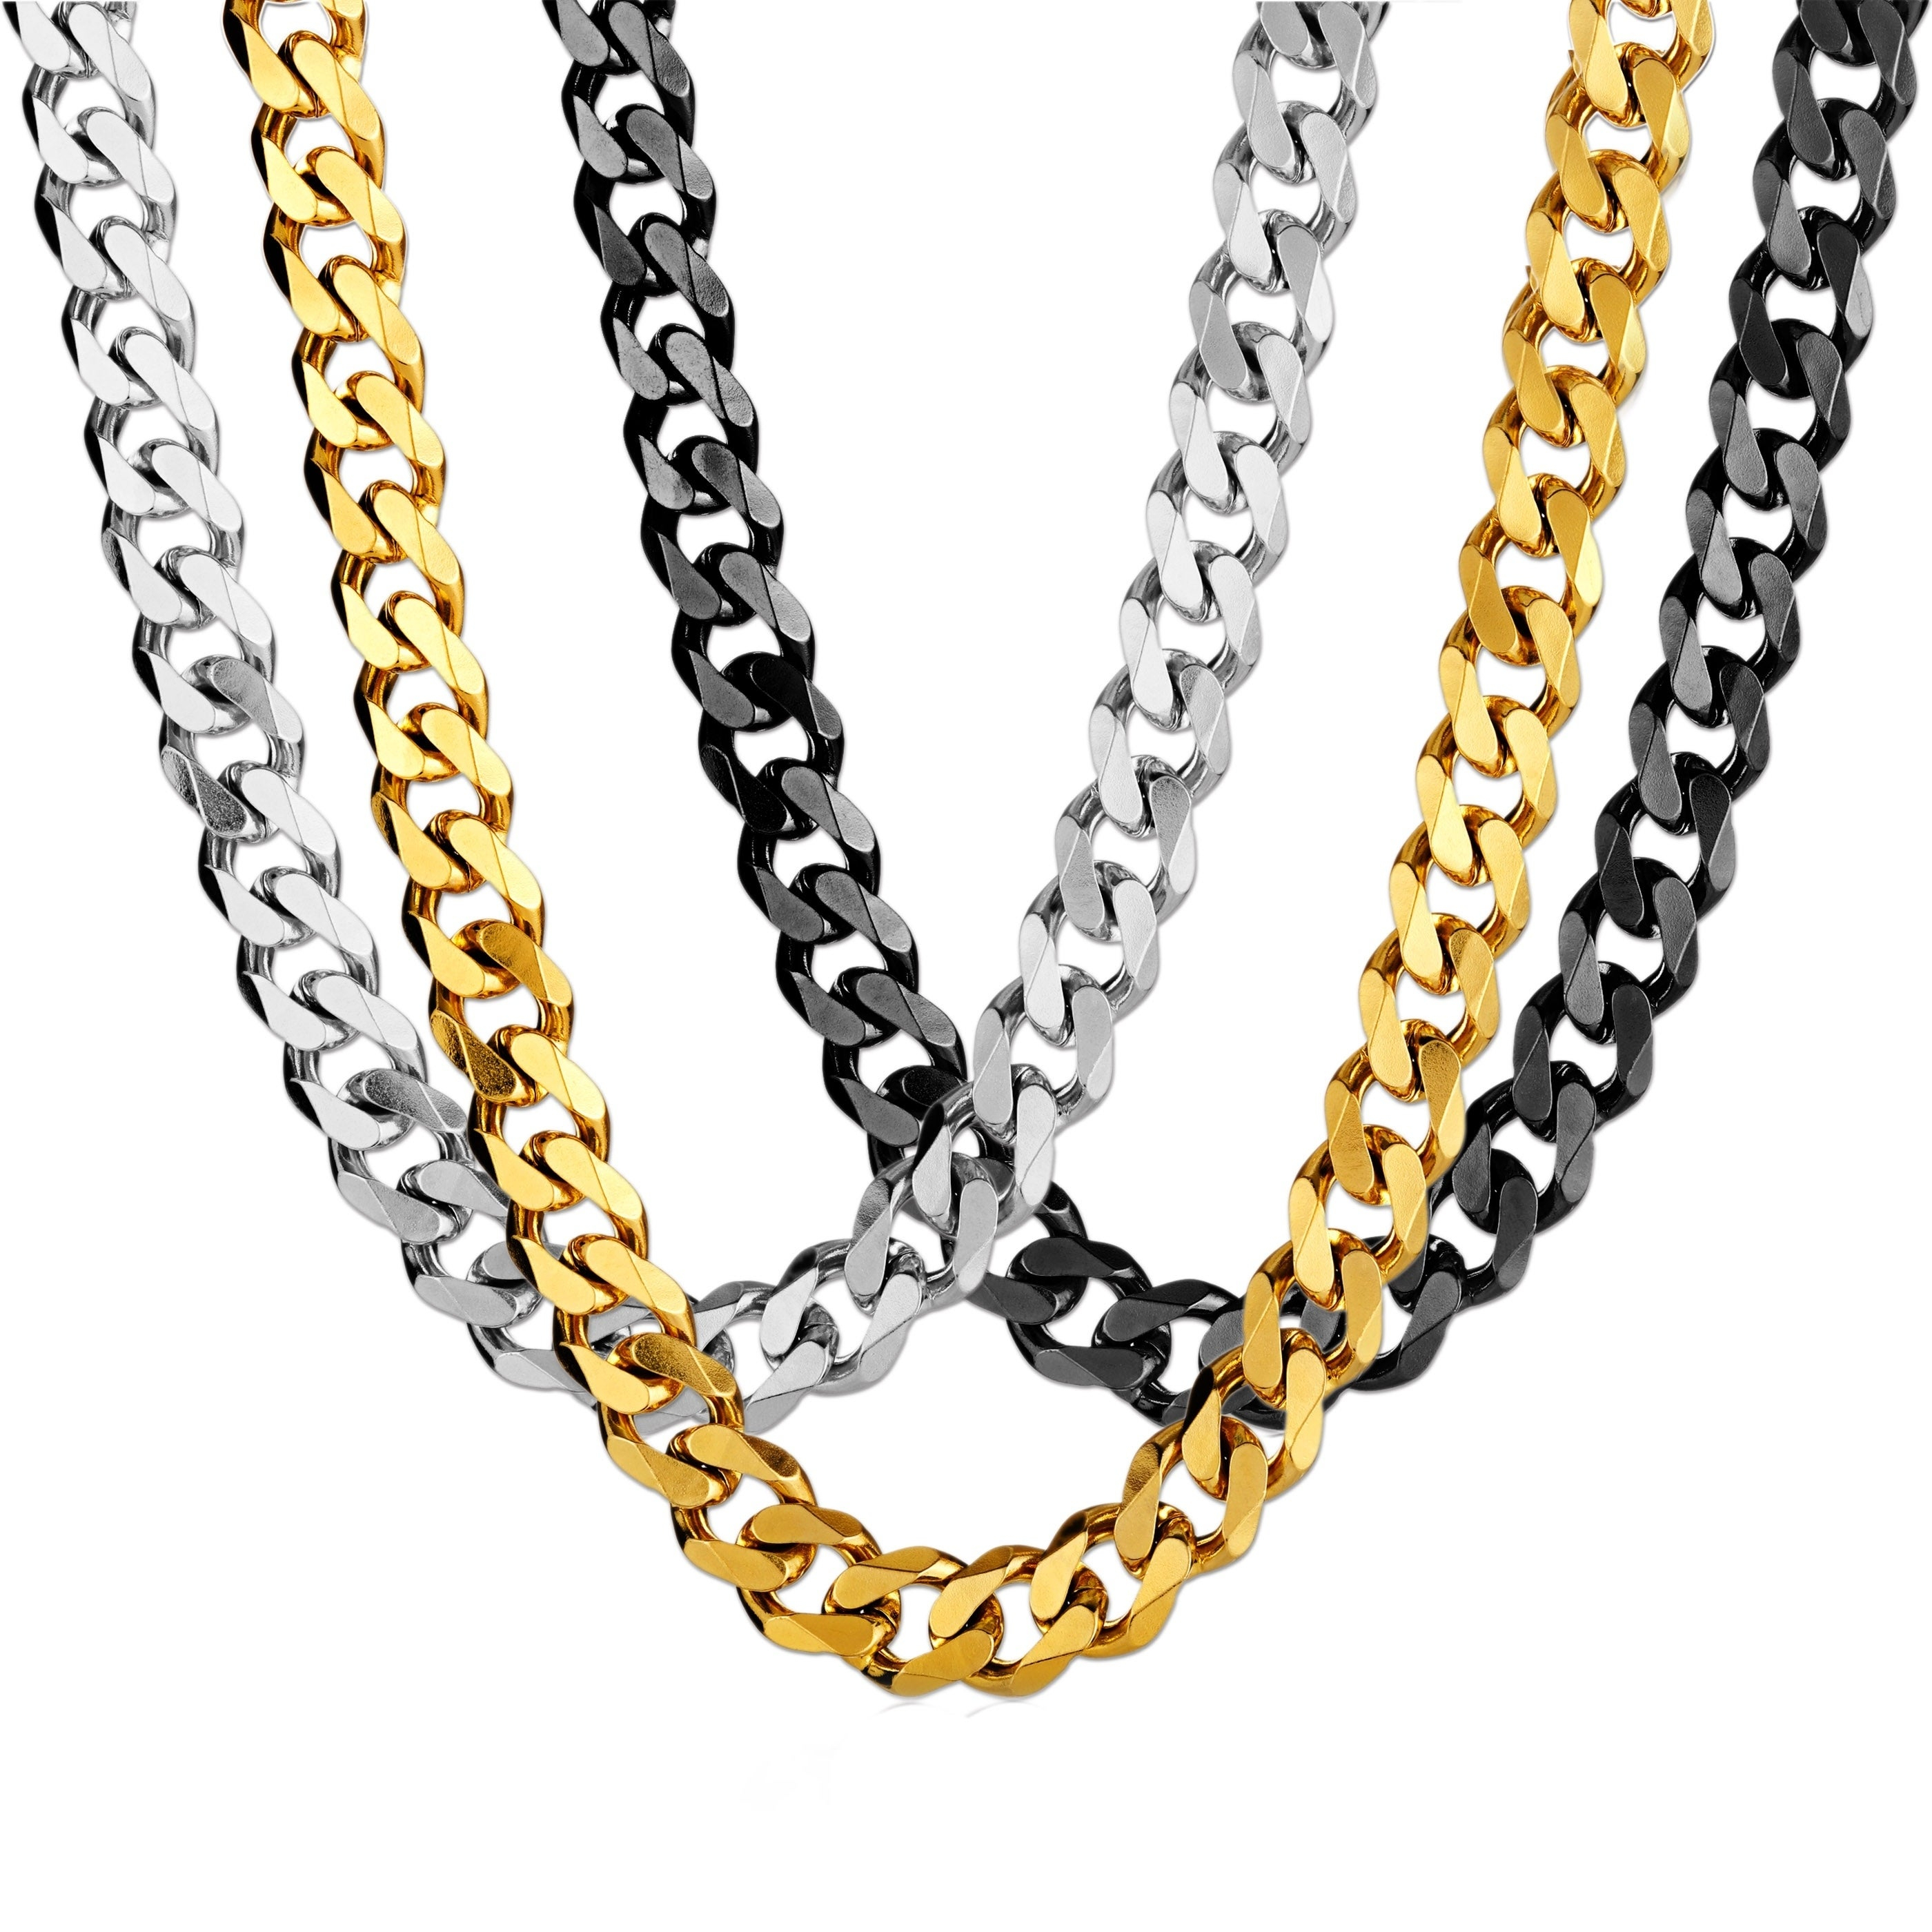 Stainless Steel Cuban Curb Chain Necklace (14Mm Wide) – 24 Inches Intended For Most Popular Curb Chain Necklaces (Gallery 1 of 25)